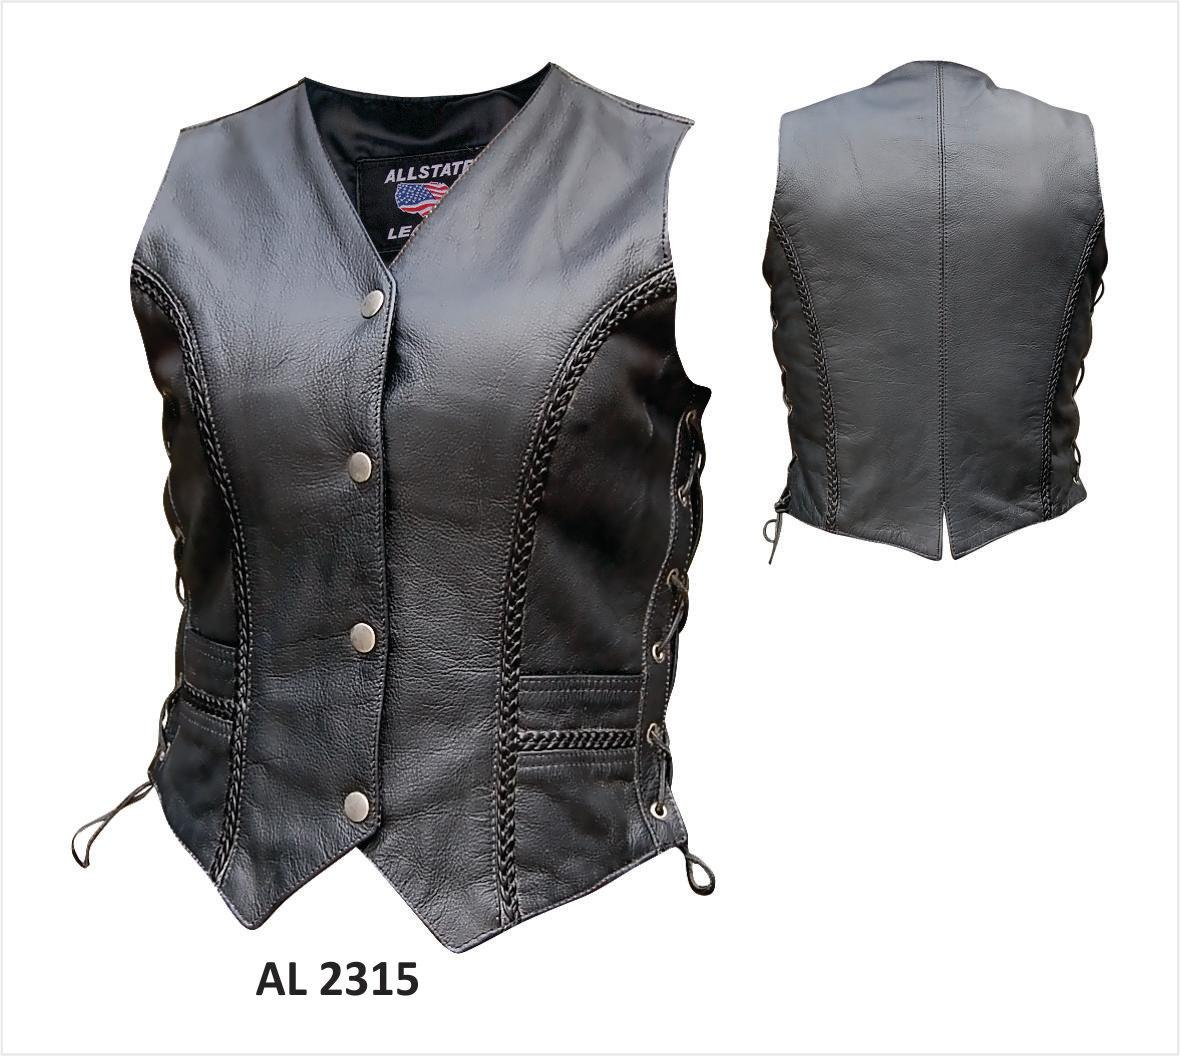 Allstate Leather Inc. image 3